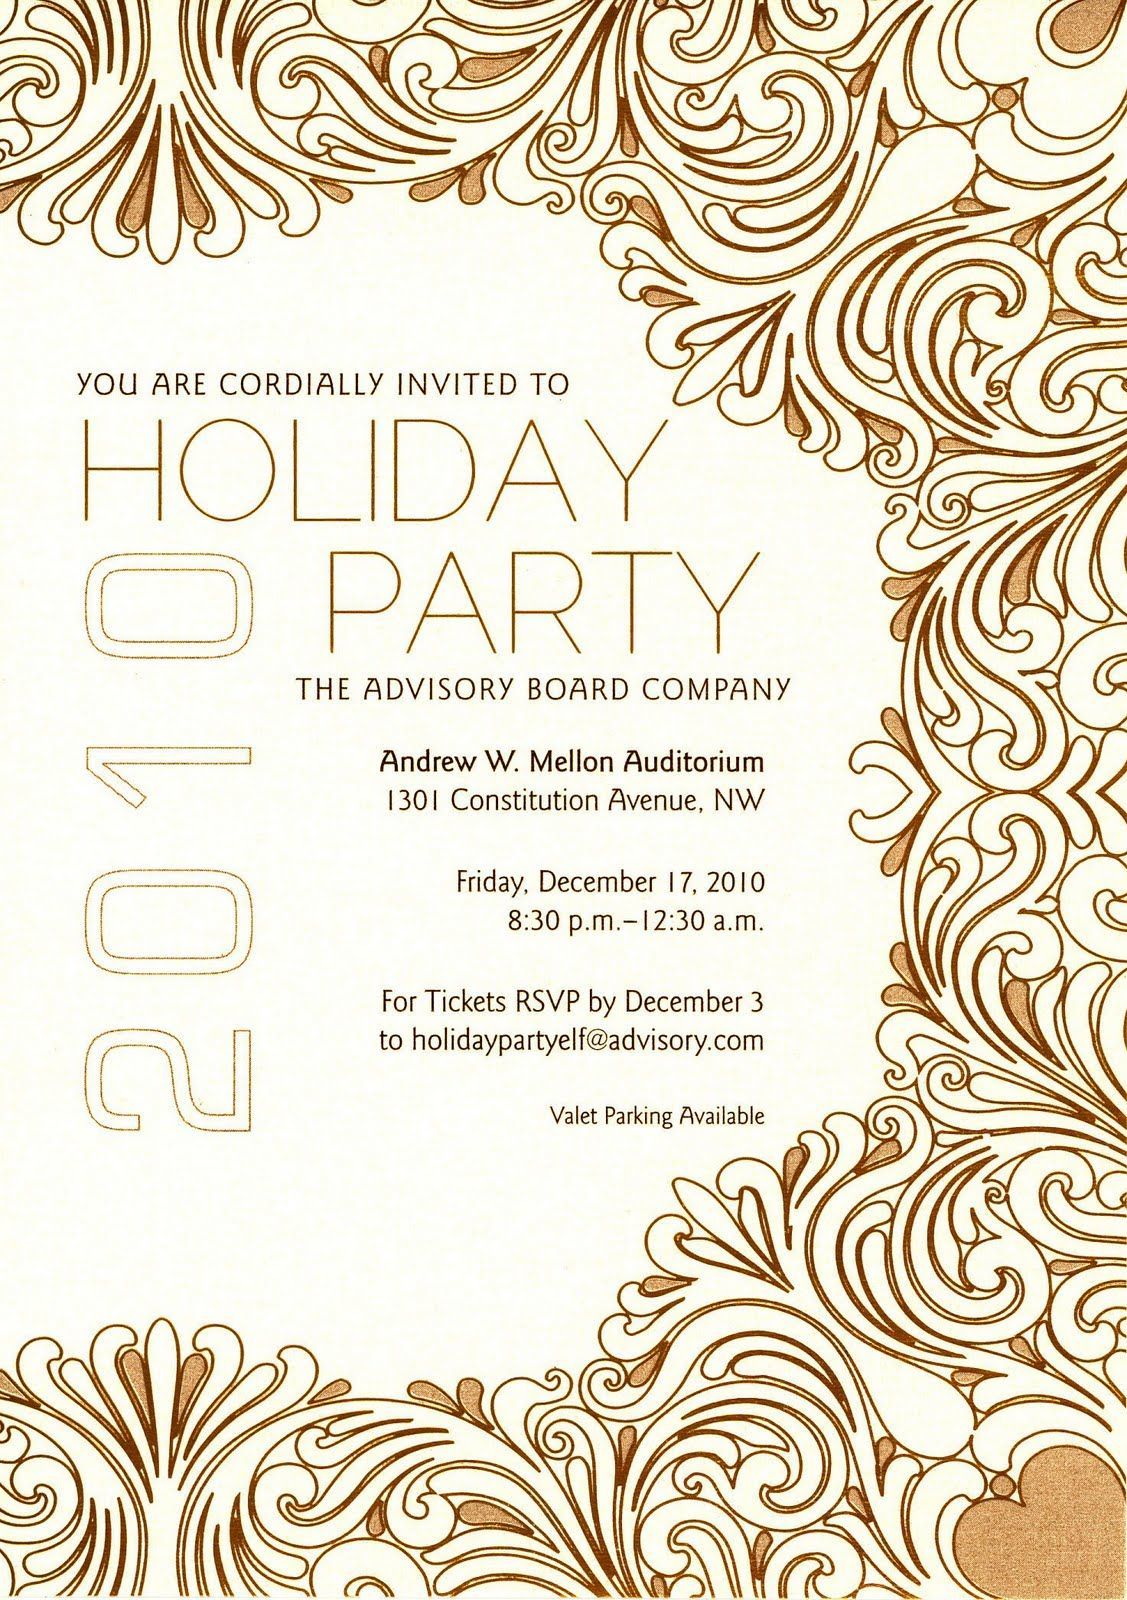 Mysoon Taha Portfolio Company Christmas Party Invitation - Office holiday party invitation template